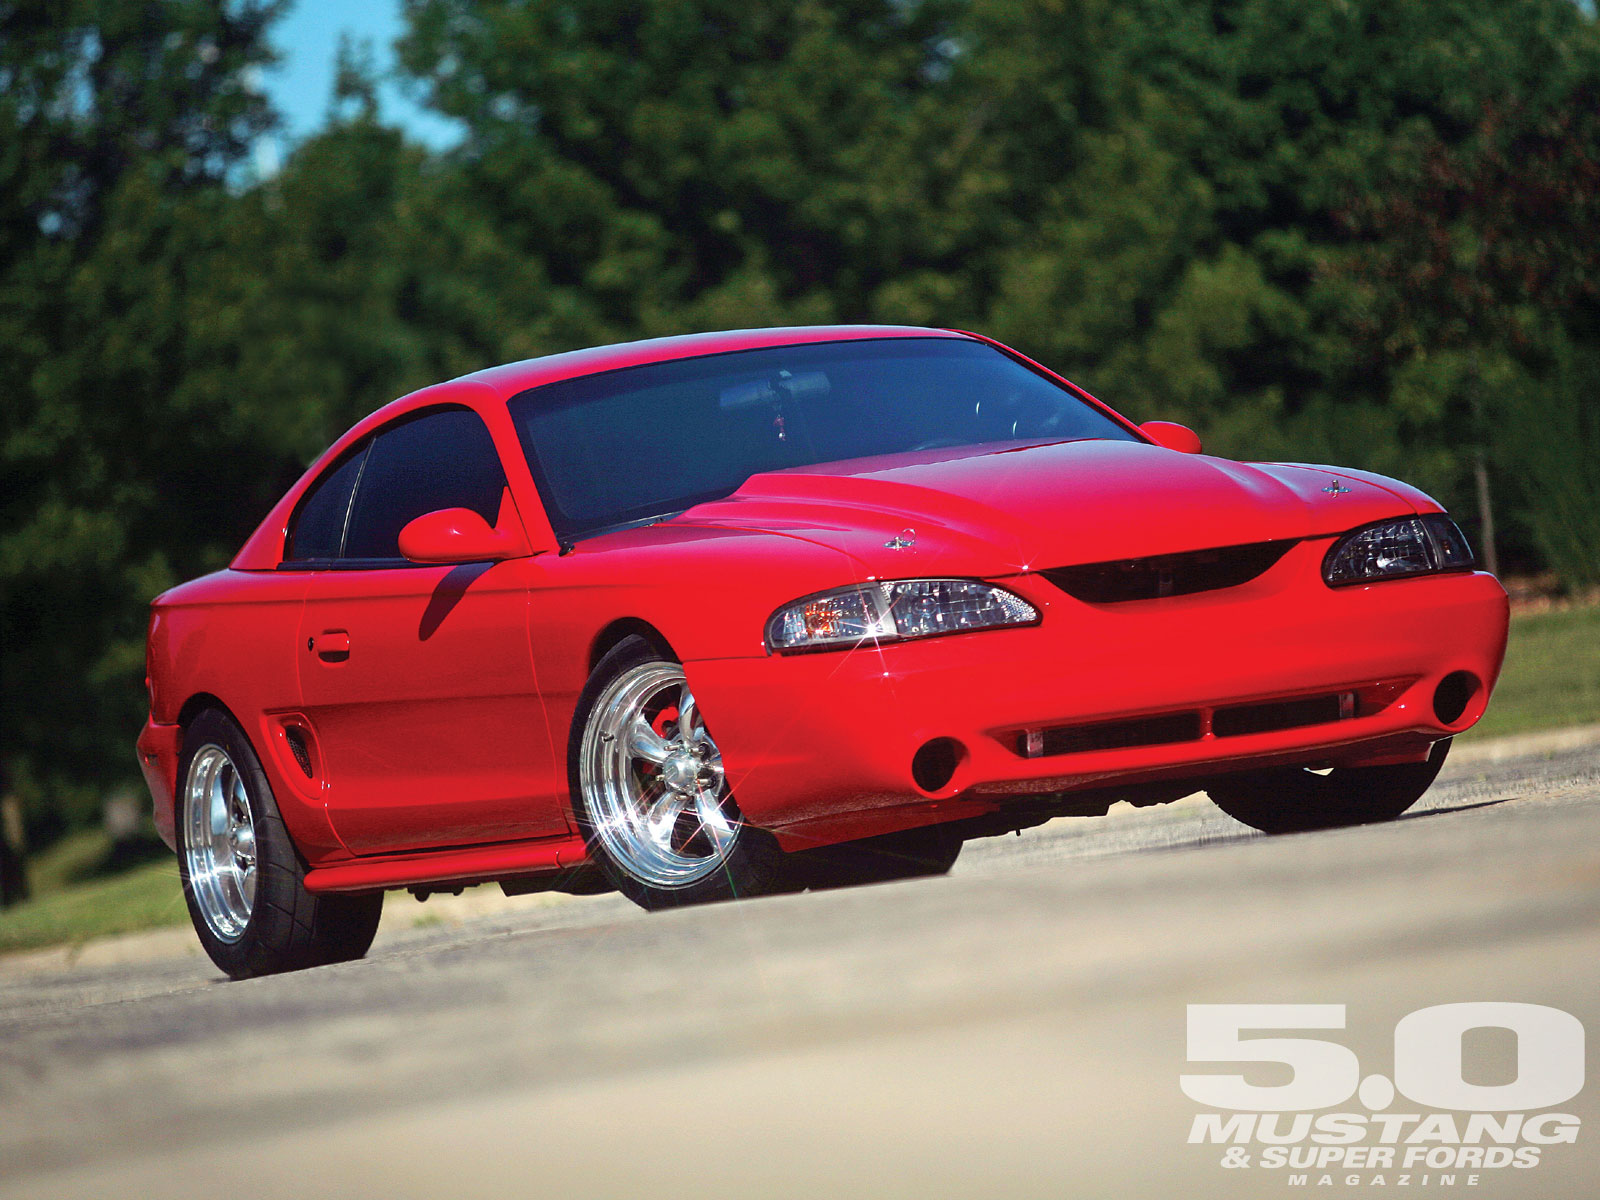 1996 Ford Mustang #17